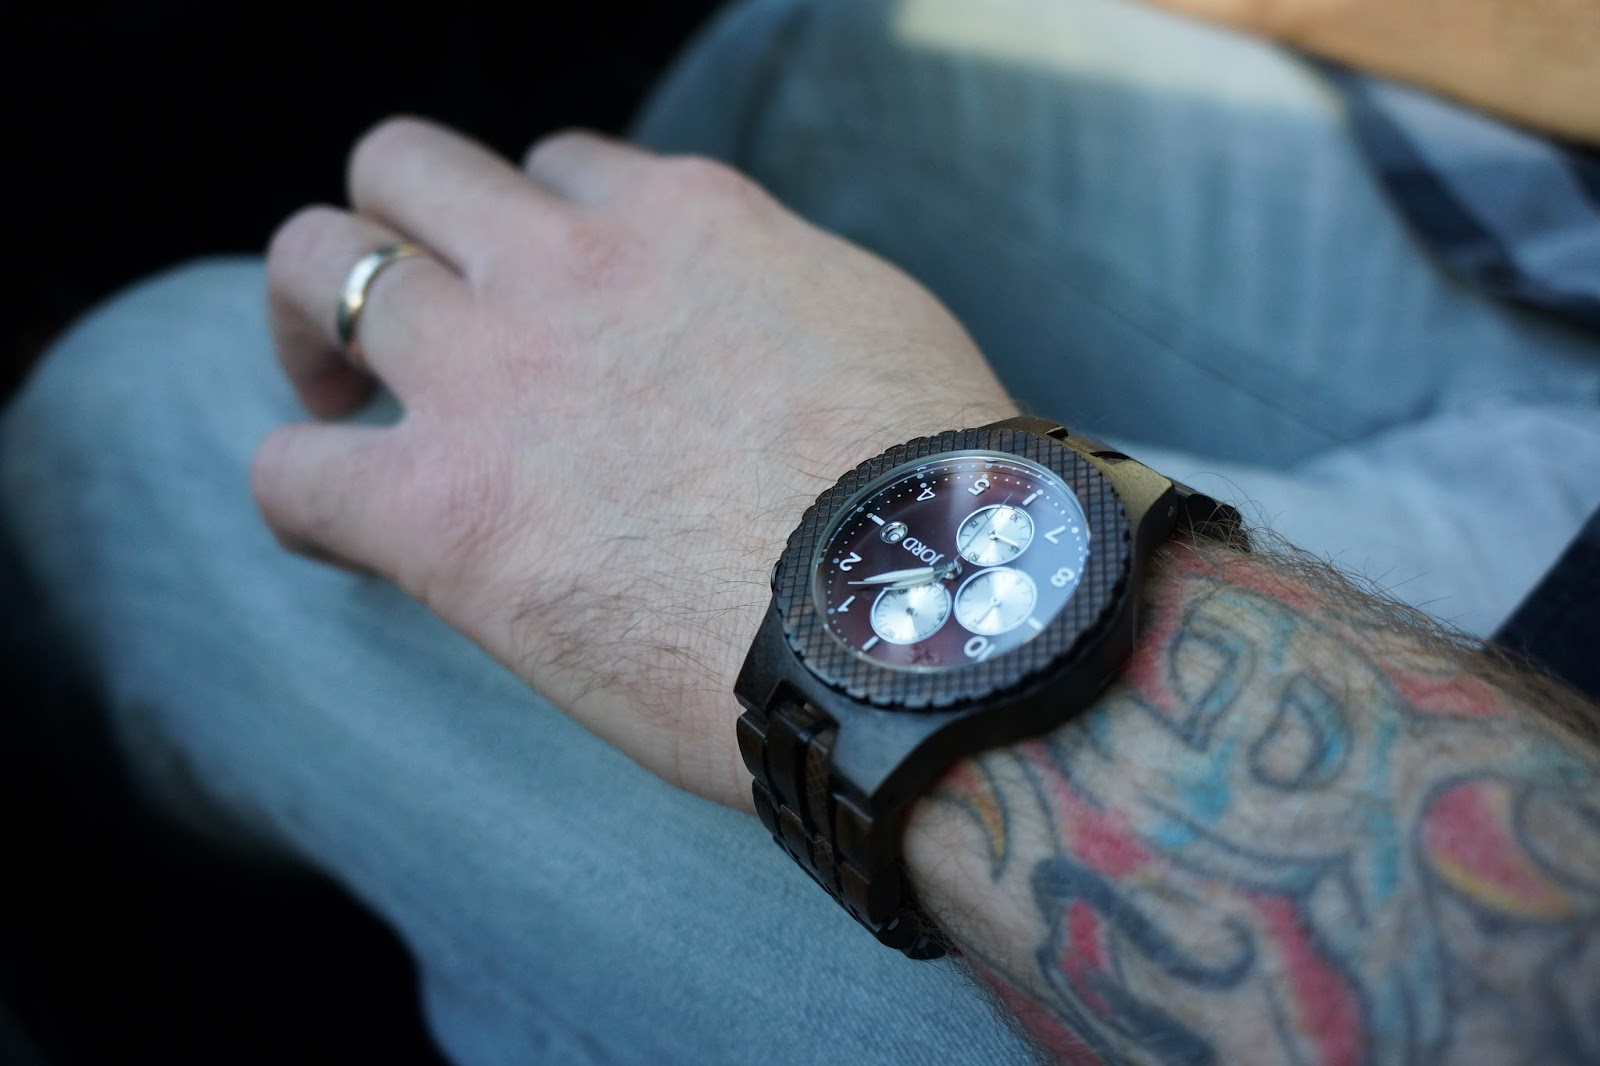 JORD men's wooden watch worn by tattooed man